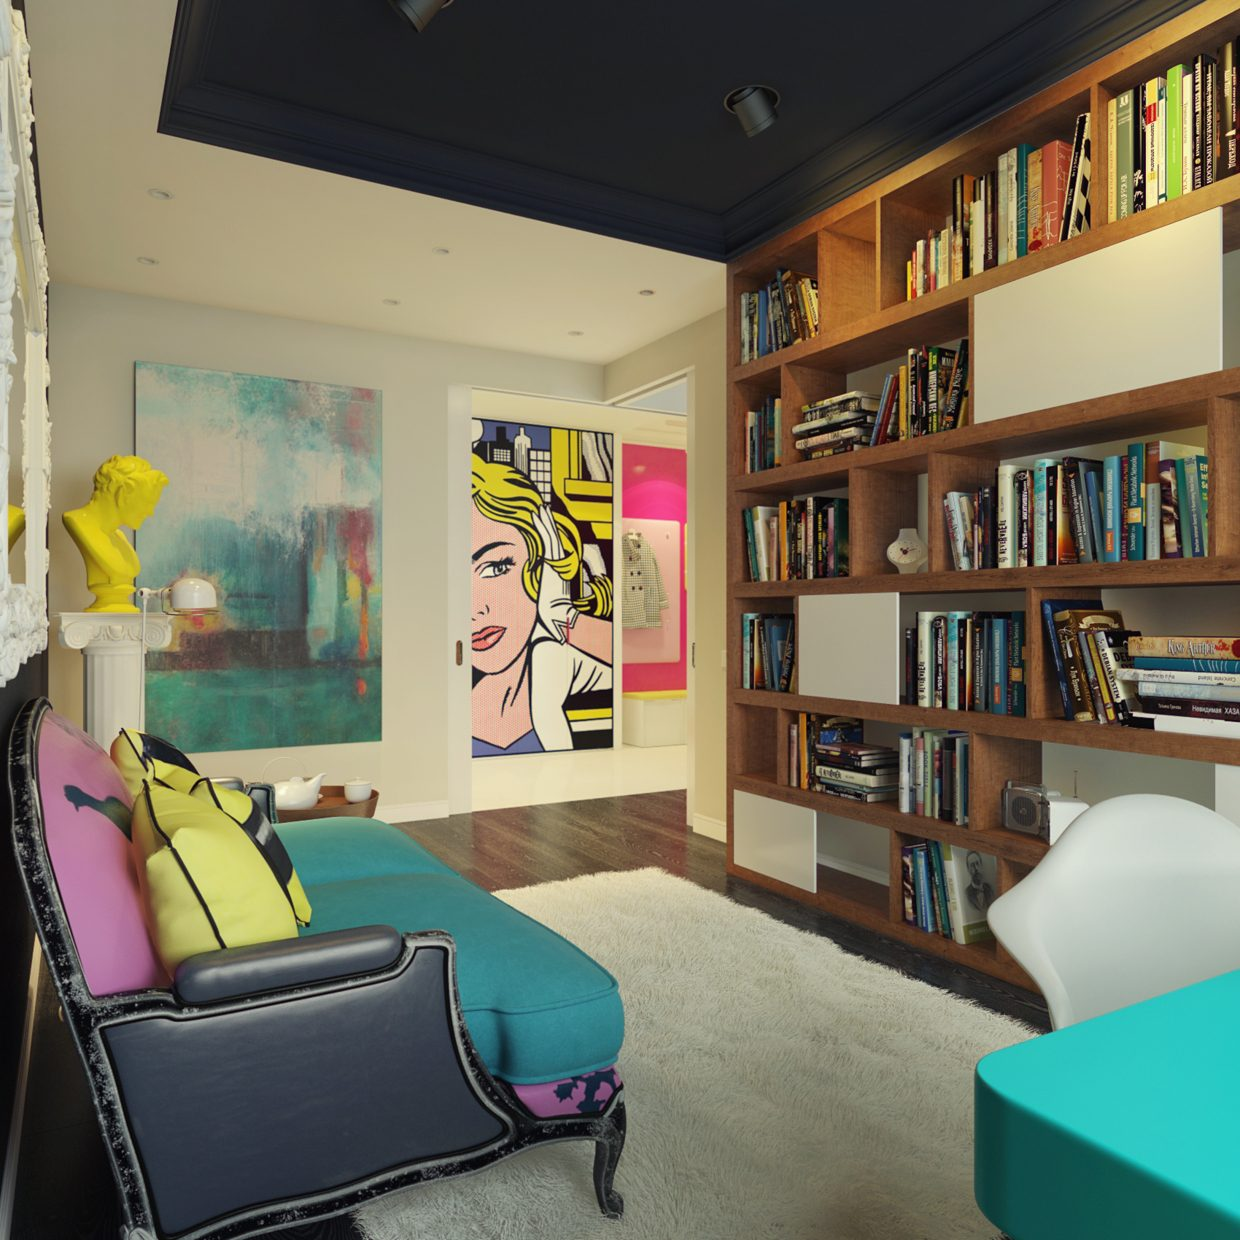 Modern Apartment Interior Design Ideas: Modern Pop Art Style Apartment